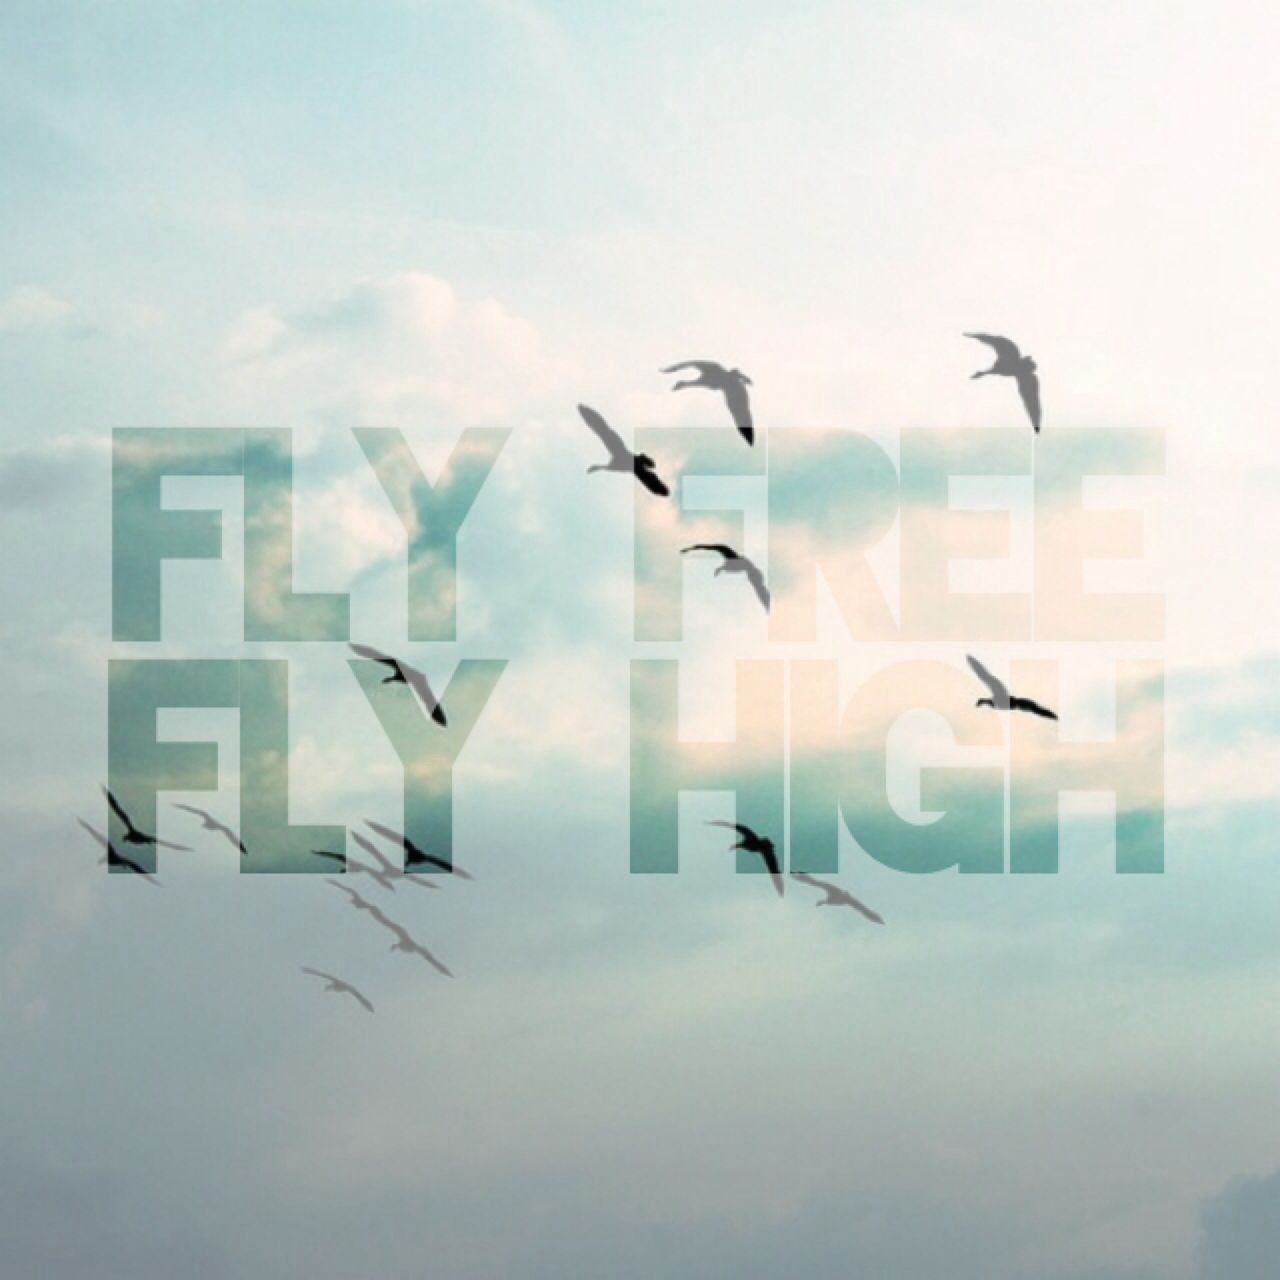 Fly Free Fly High Quotes Fly Quotes High Quotes Lyrics To Live By